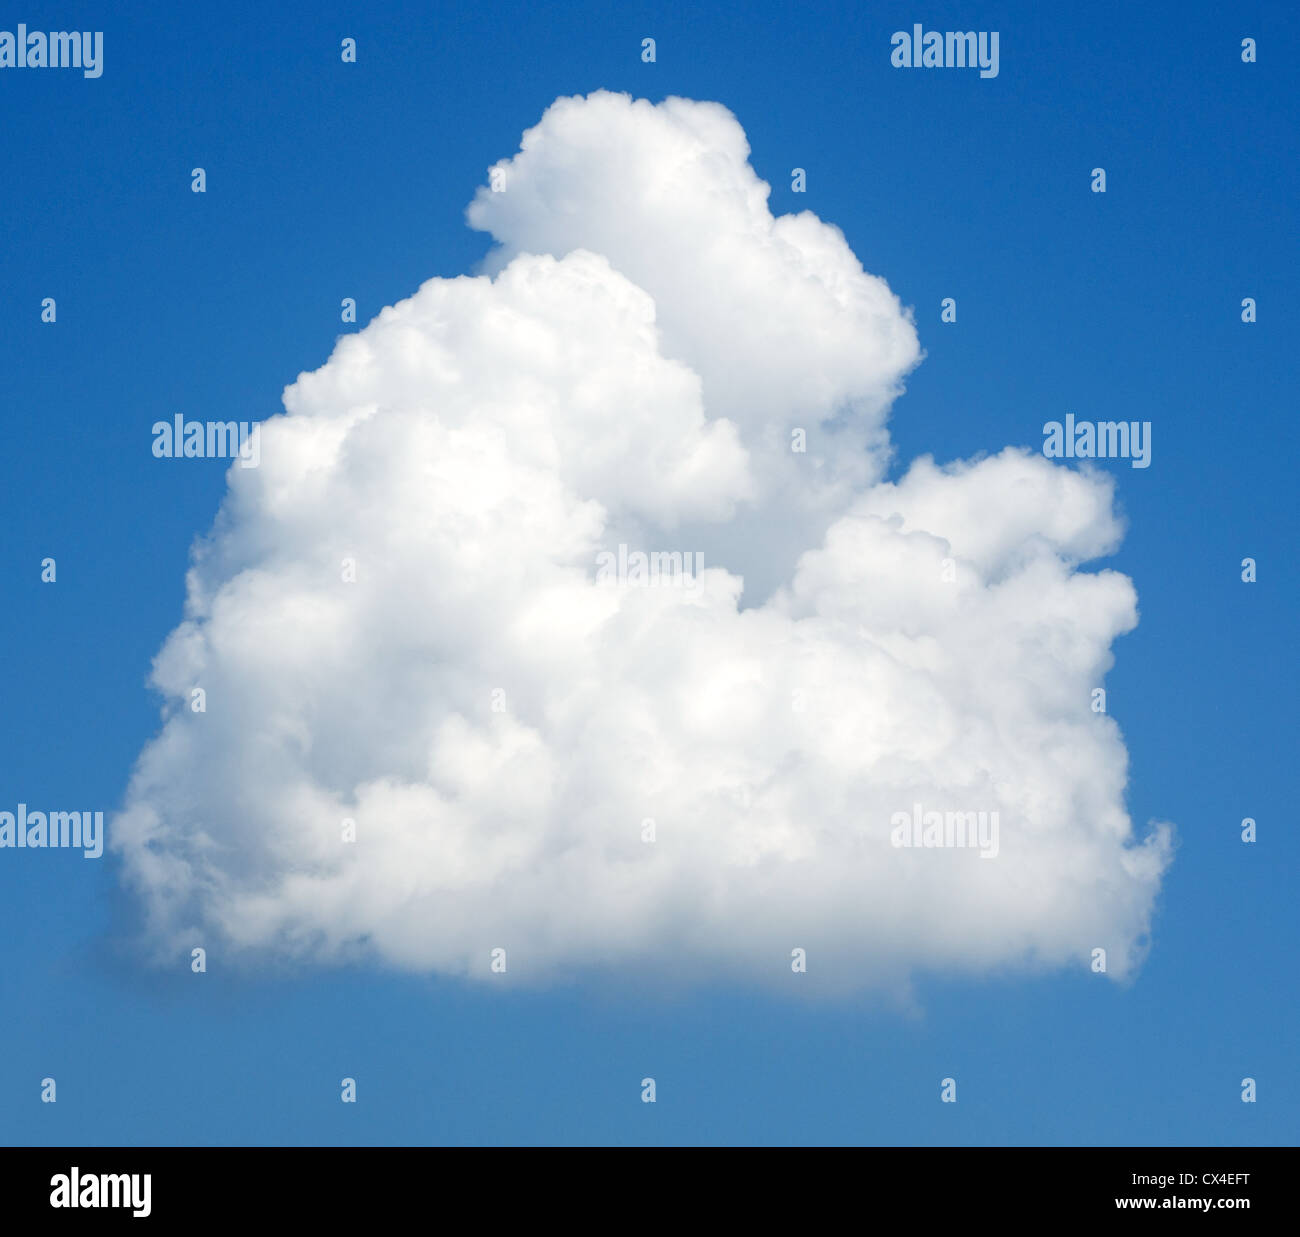 Background of a blue sky and a single cloud - Stock Image